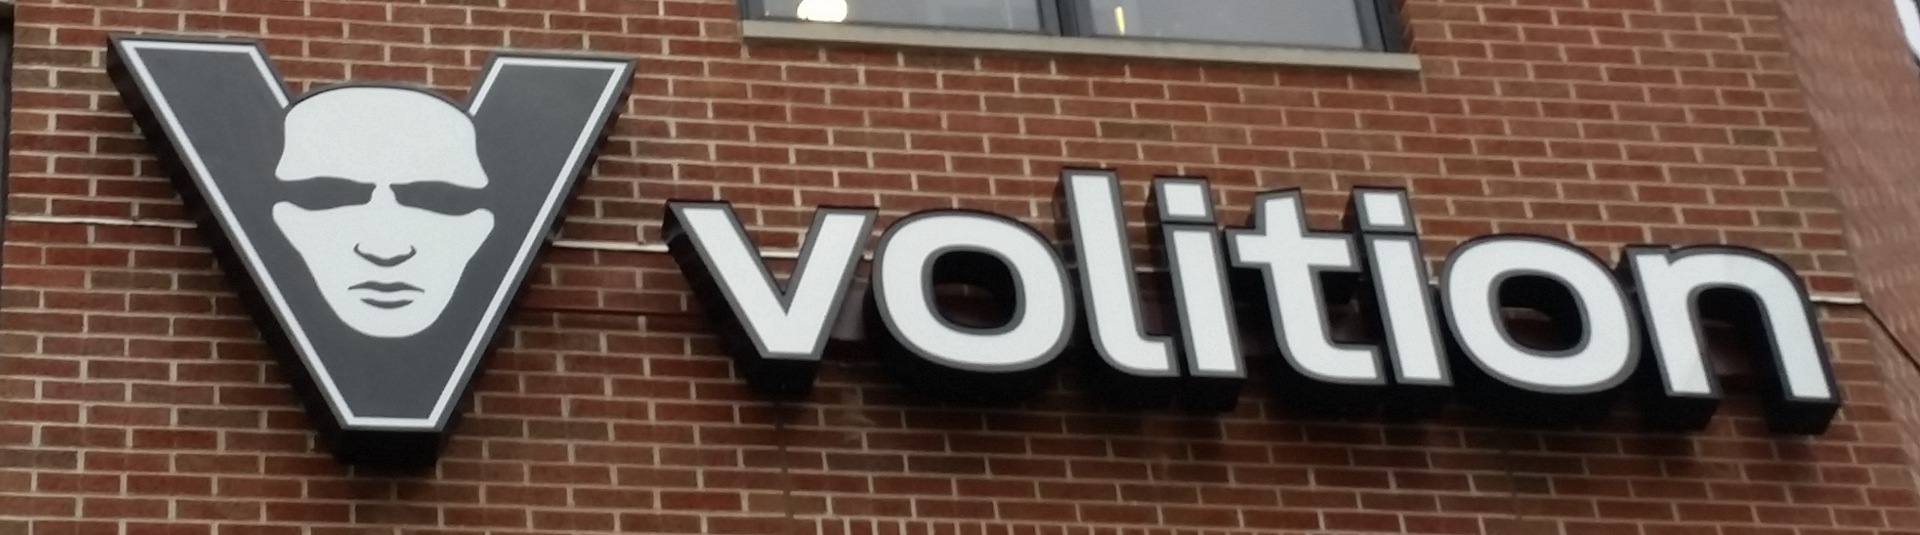 Volition-wall-sign-cropped